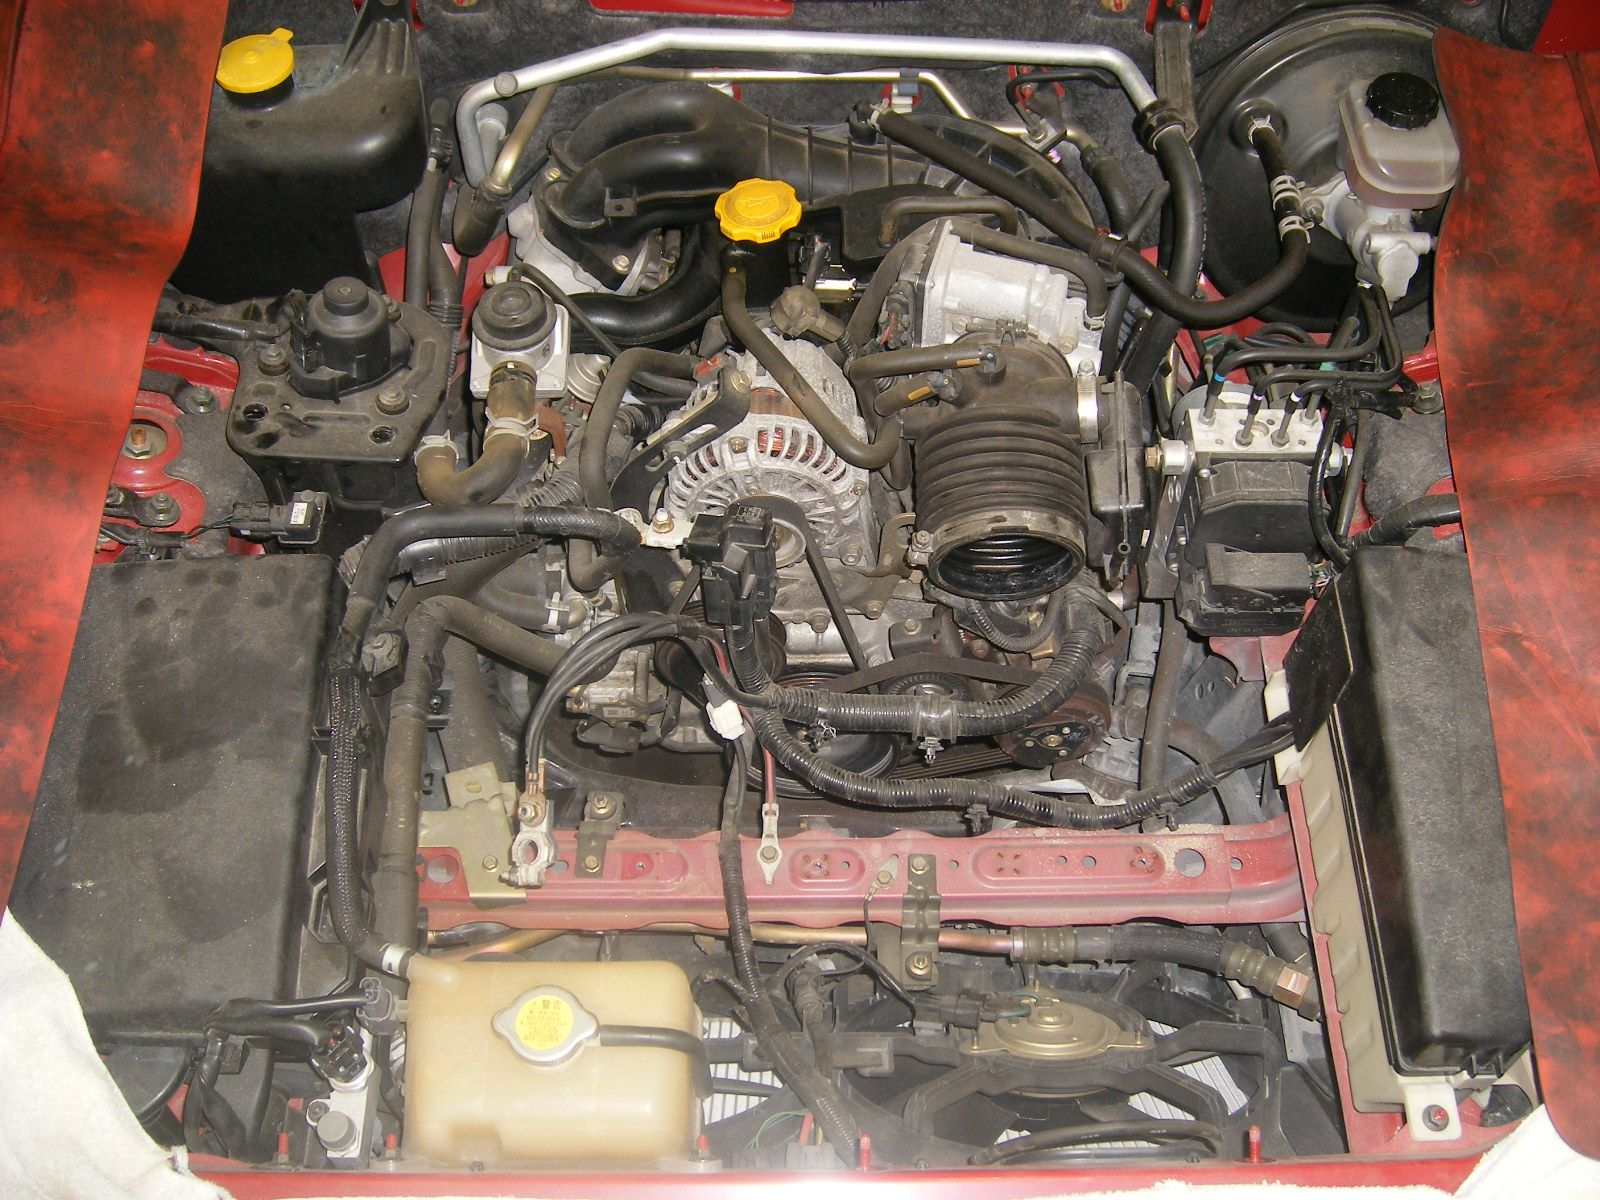 medium resolution of how to lift the engine out of the engine compartment mazda pinterest com mazda engine diagram